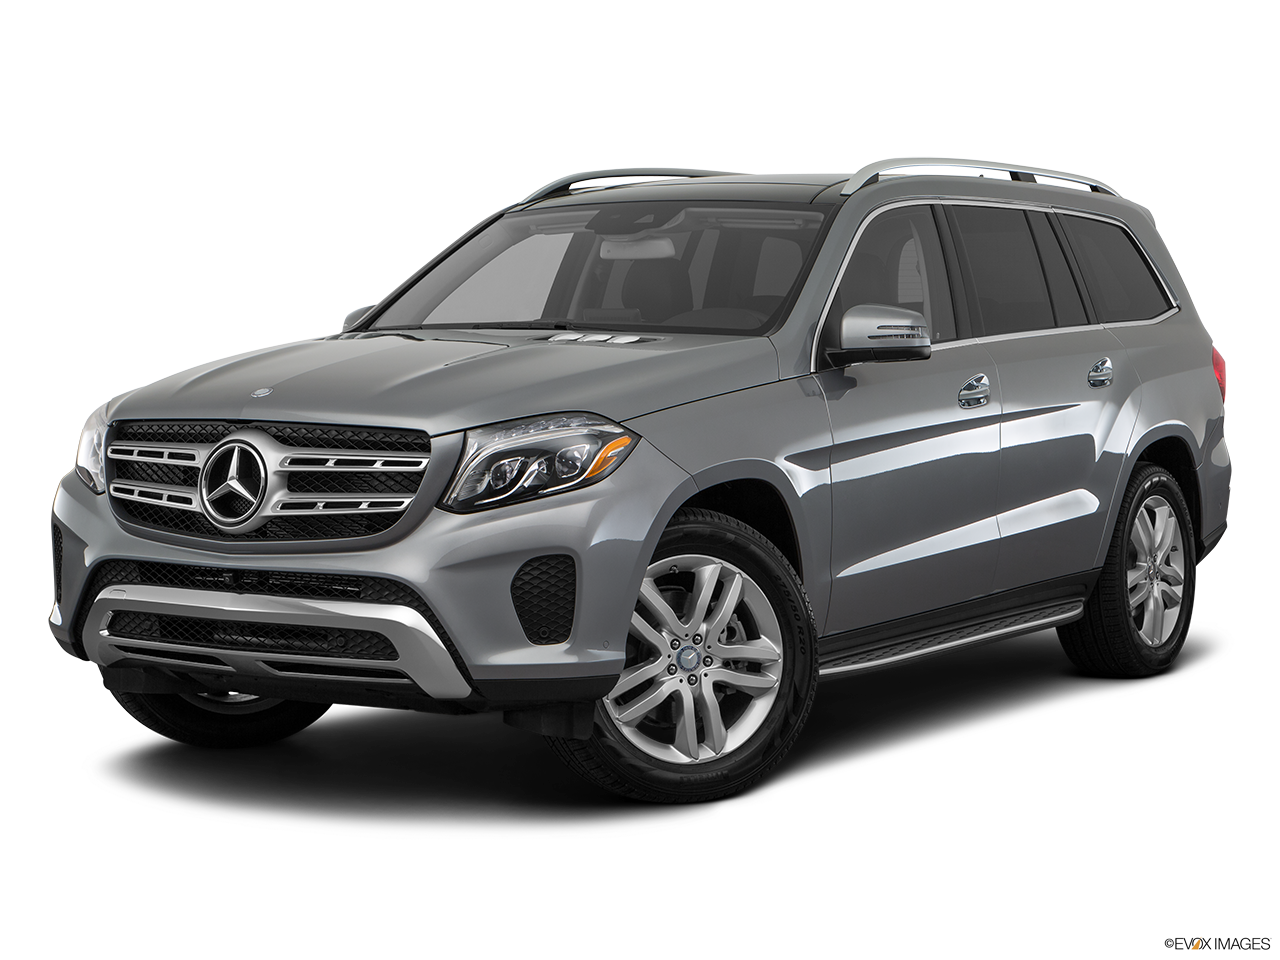 Test Drive A 2017 Mercedes-Benz GLS450 at Wagner Mercedes-Benz of Shrewsbury in Shrewsbury